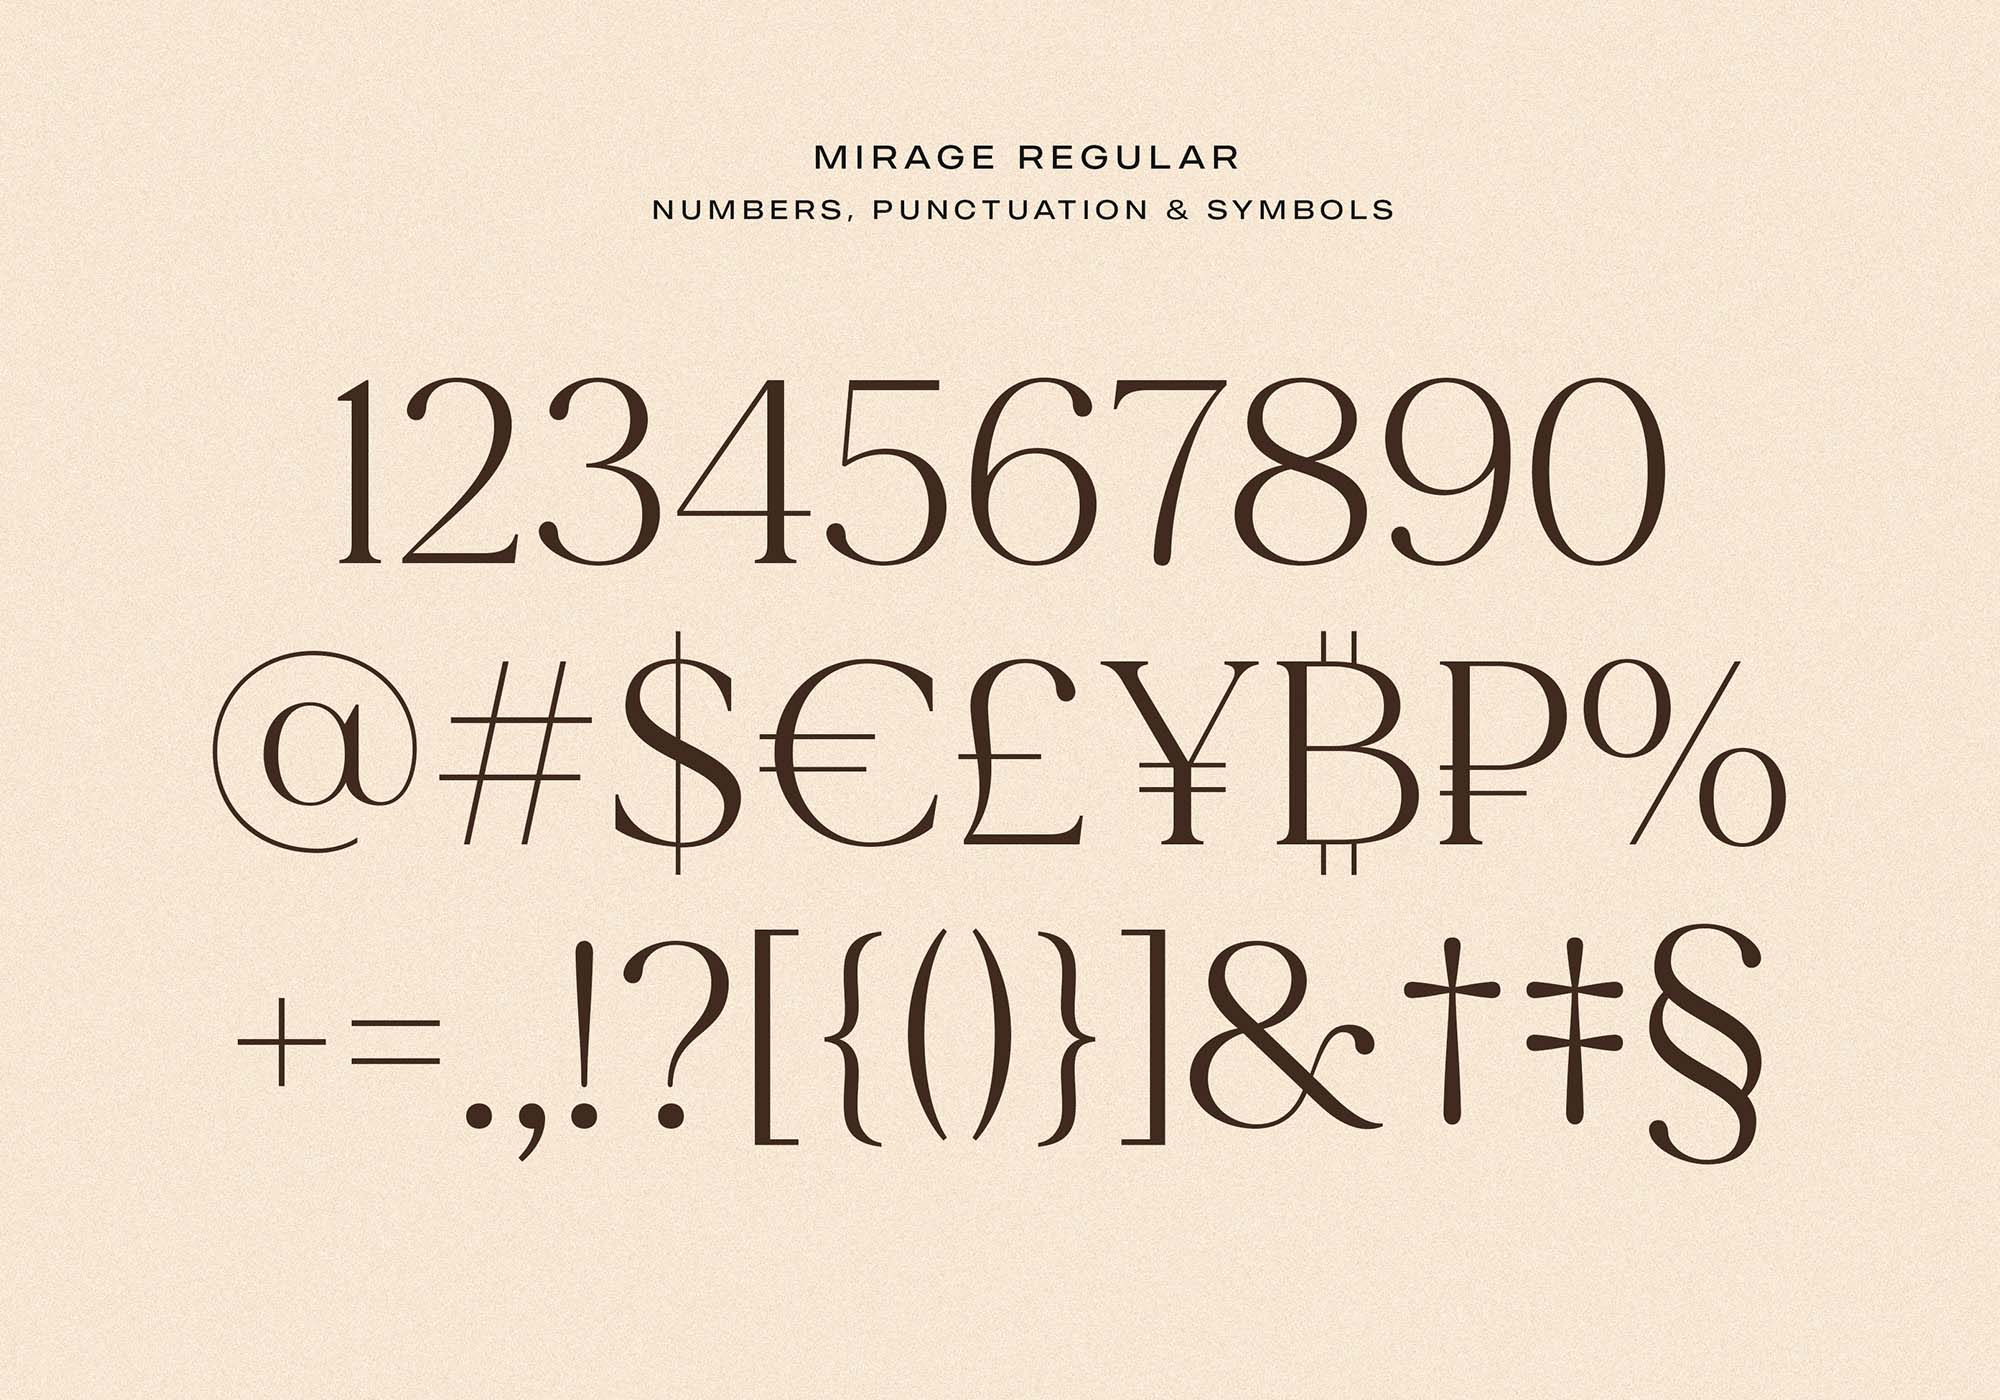 Made Mirage Serif Font Numbers